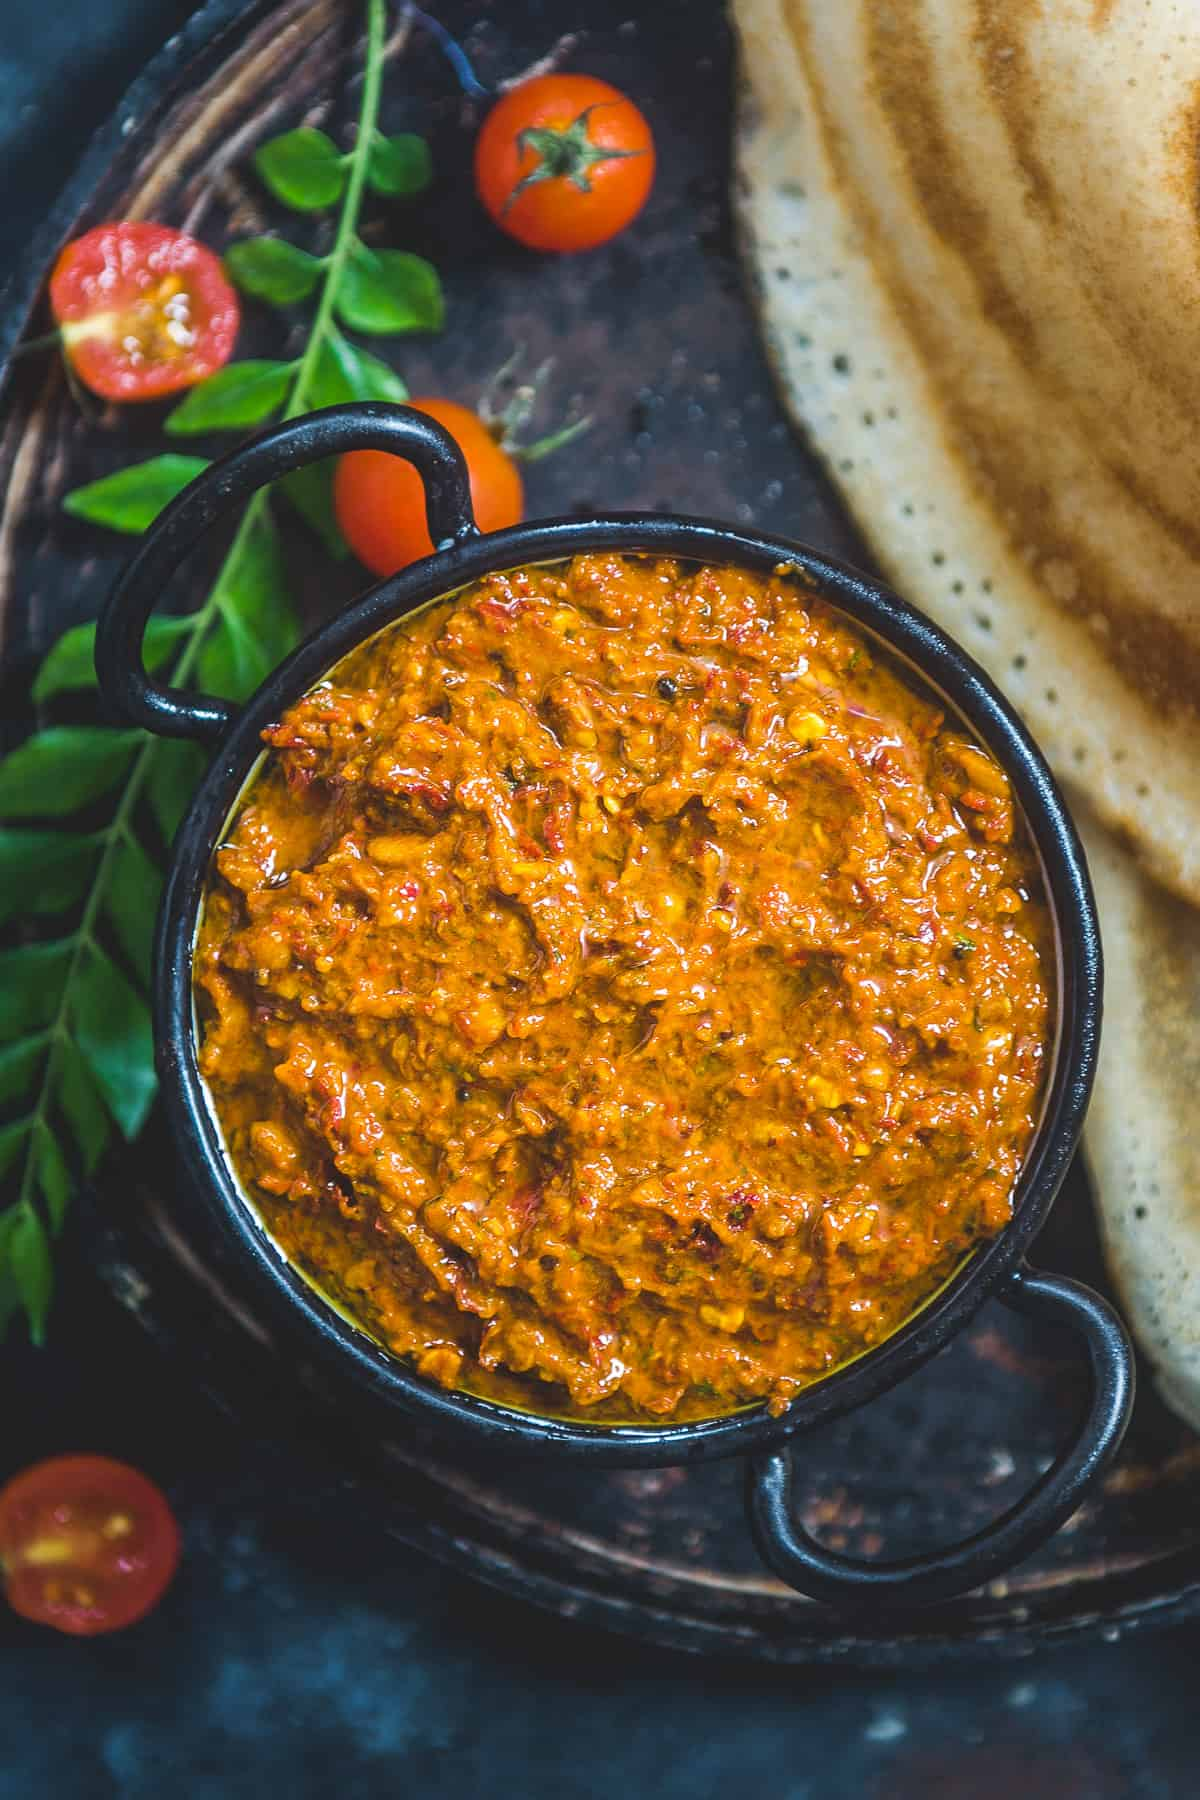 Tomato pachadi served in a bowl.